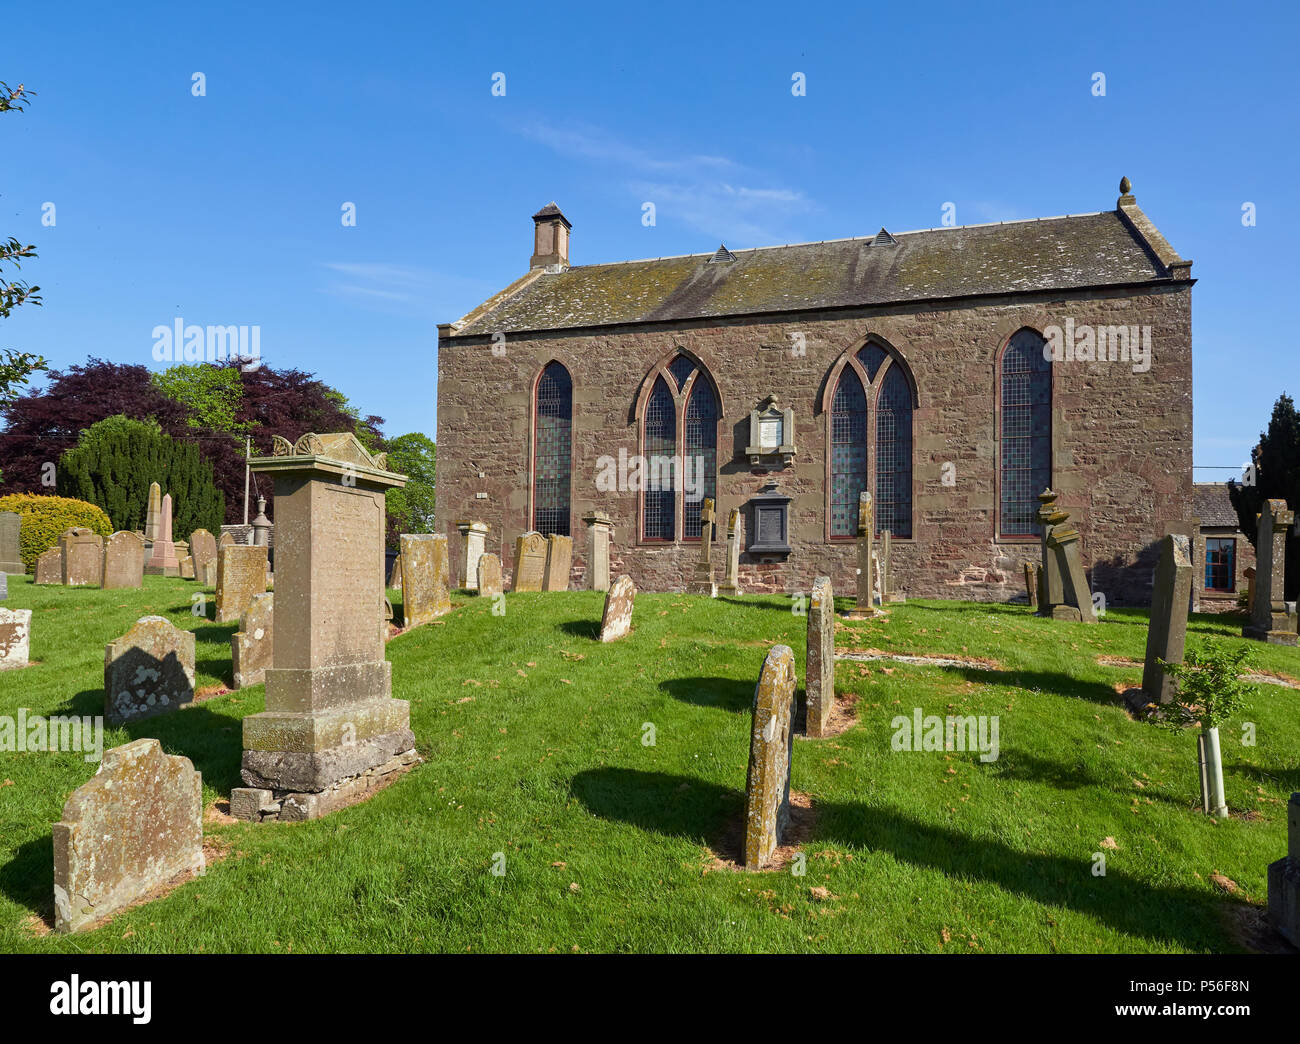 A side view of Monikie Kirk, and Old Red Sandstone constructed Church near to Dundee in Angus, Scotland. - Stock Image